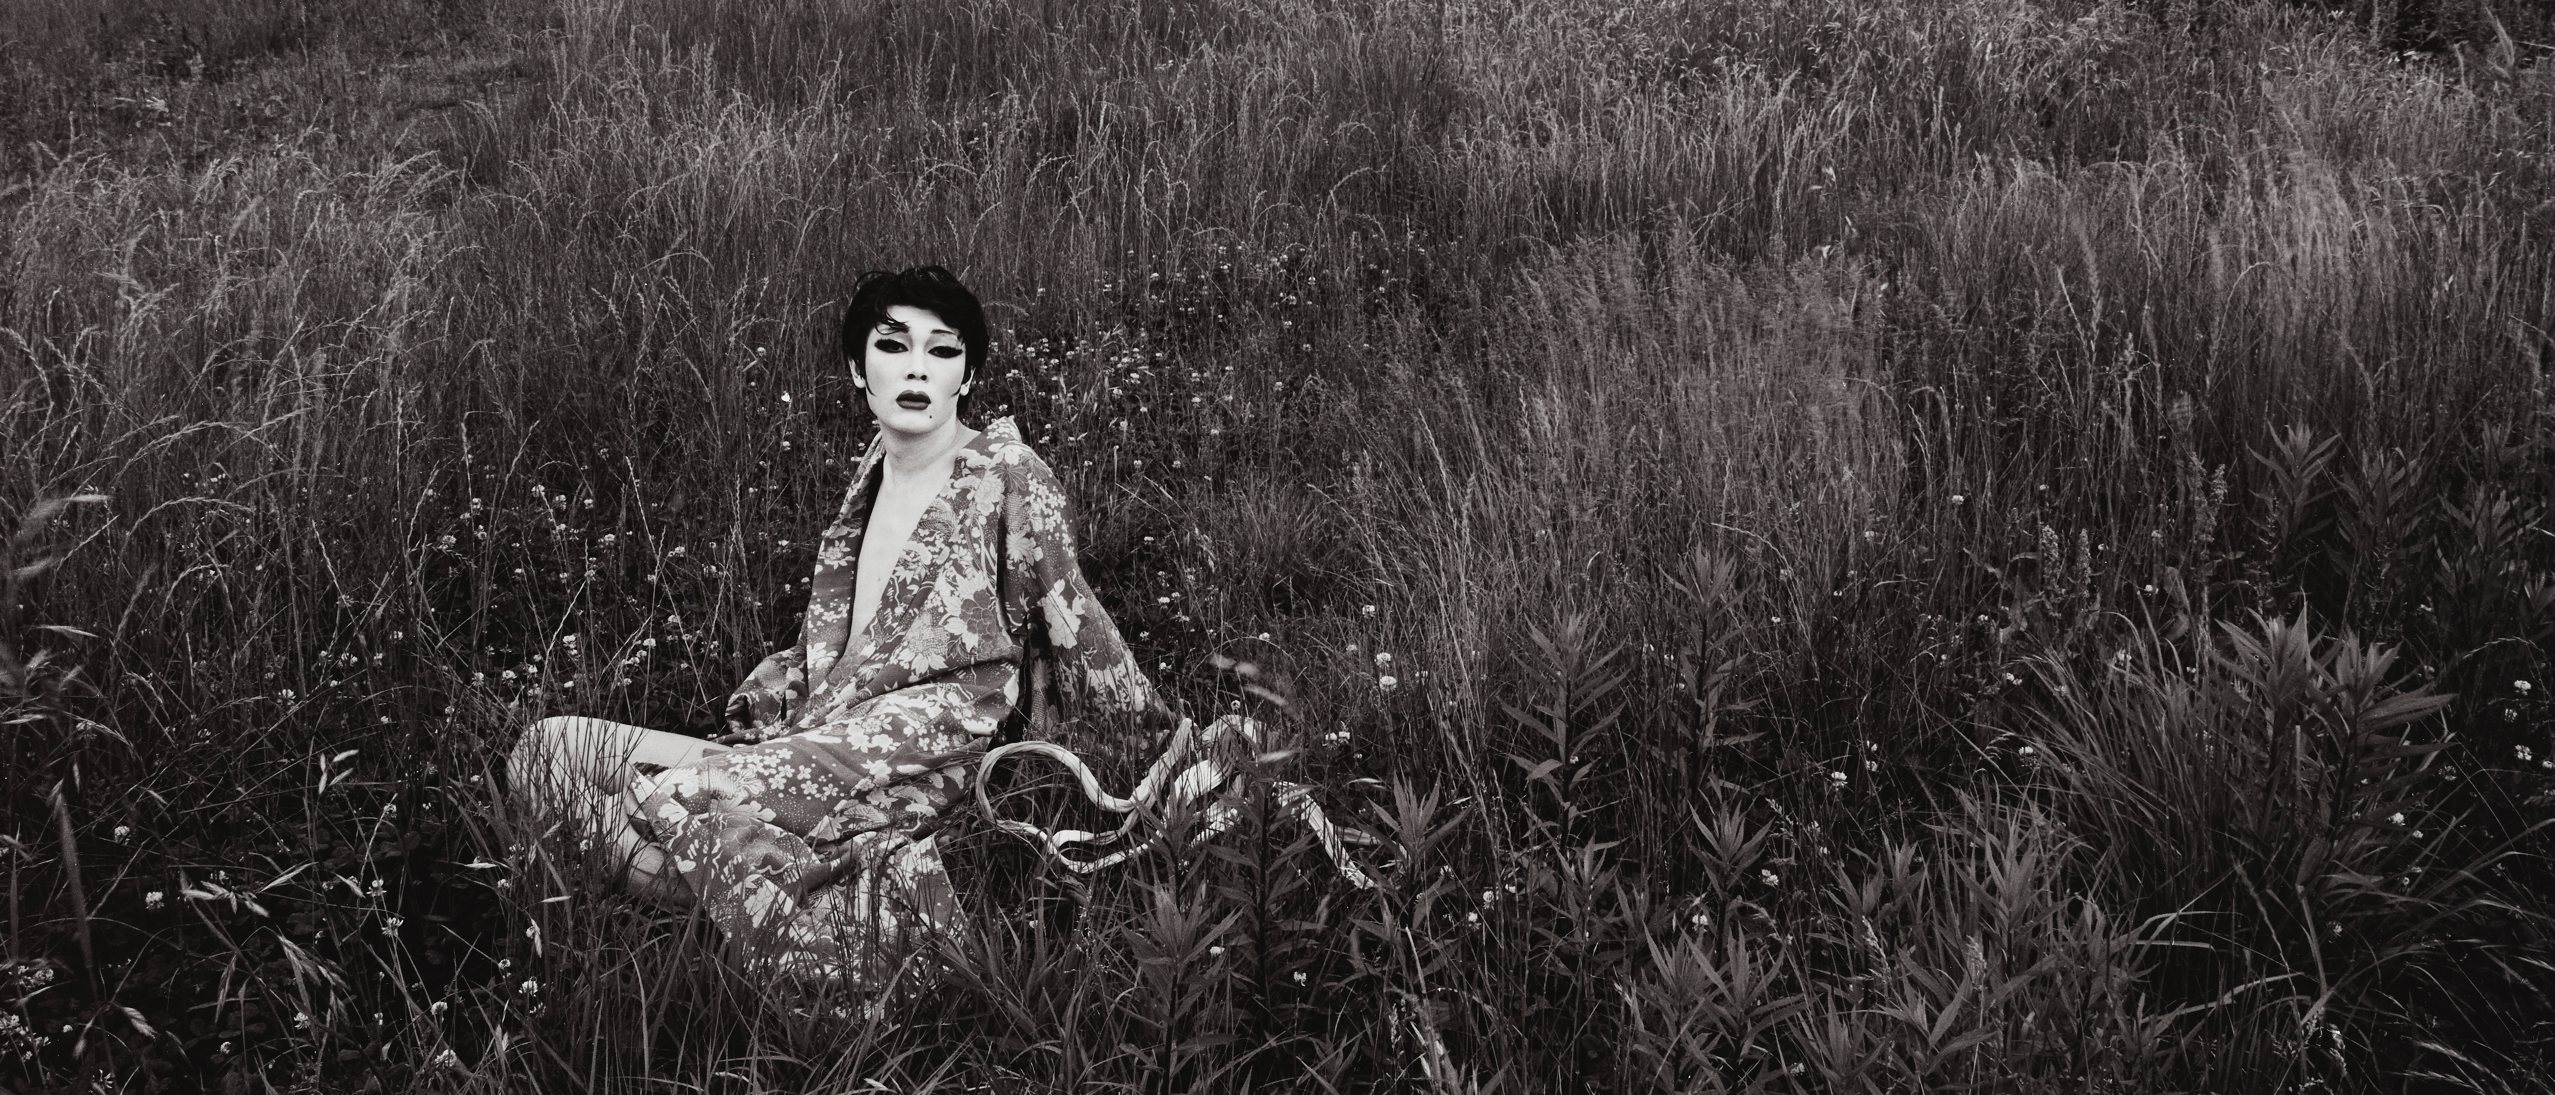 A black and white photo of a lounging figure in makeup and kimono